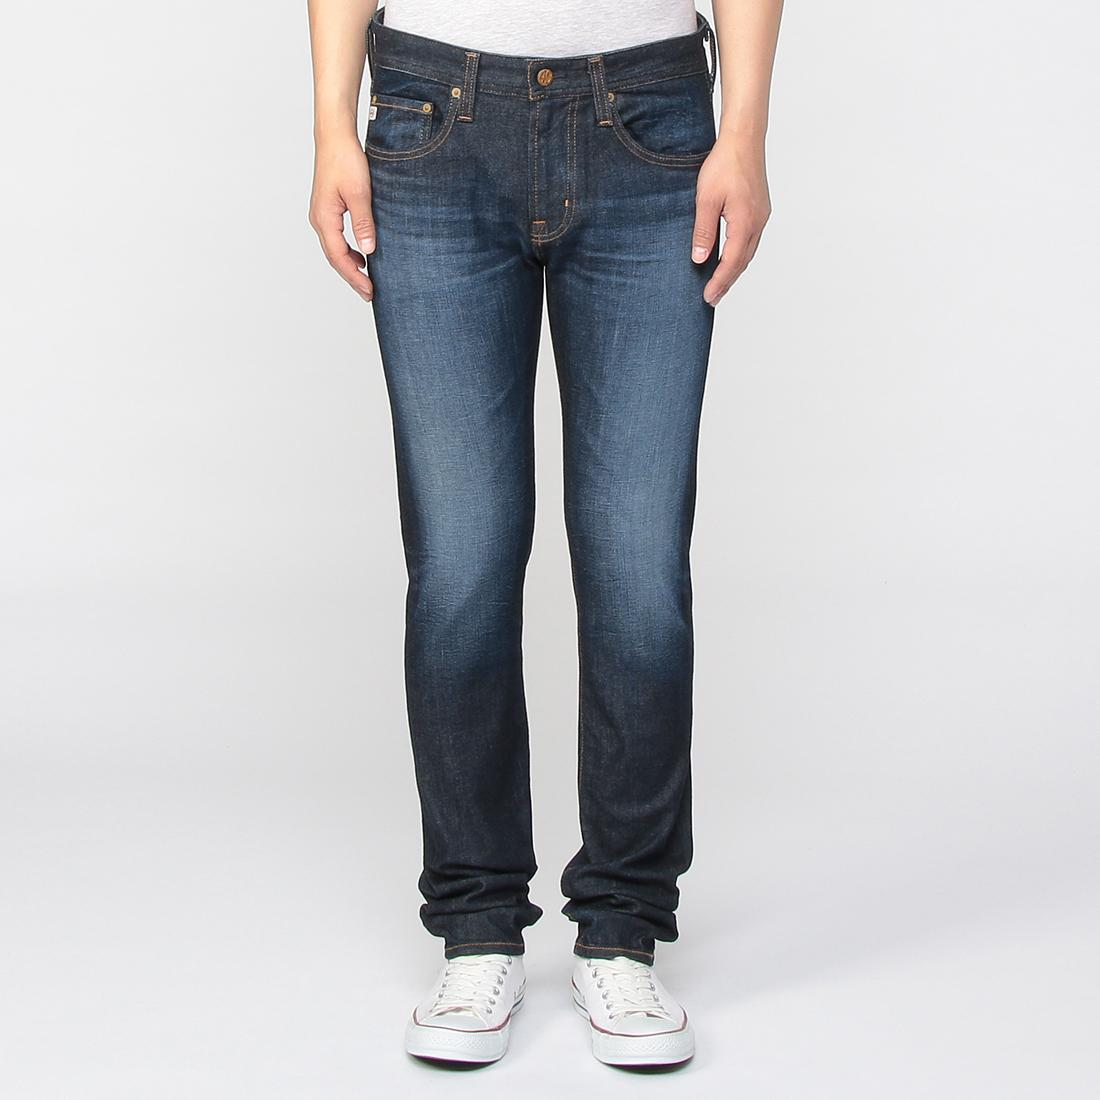 201605_mens-denim-5_003